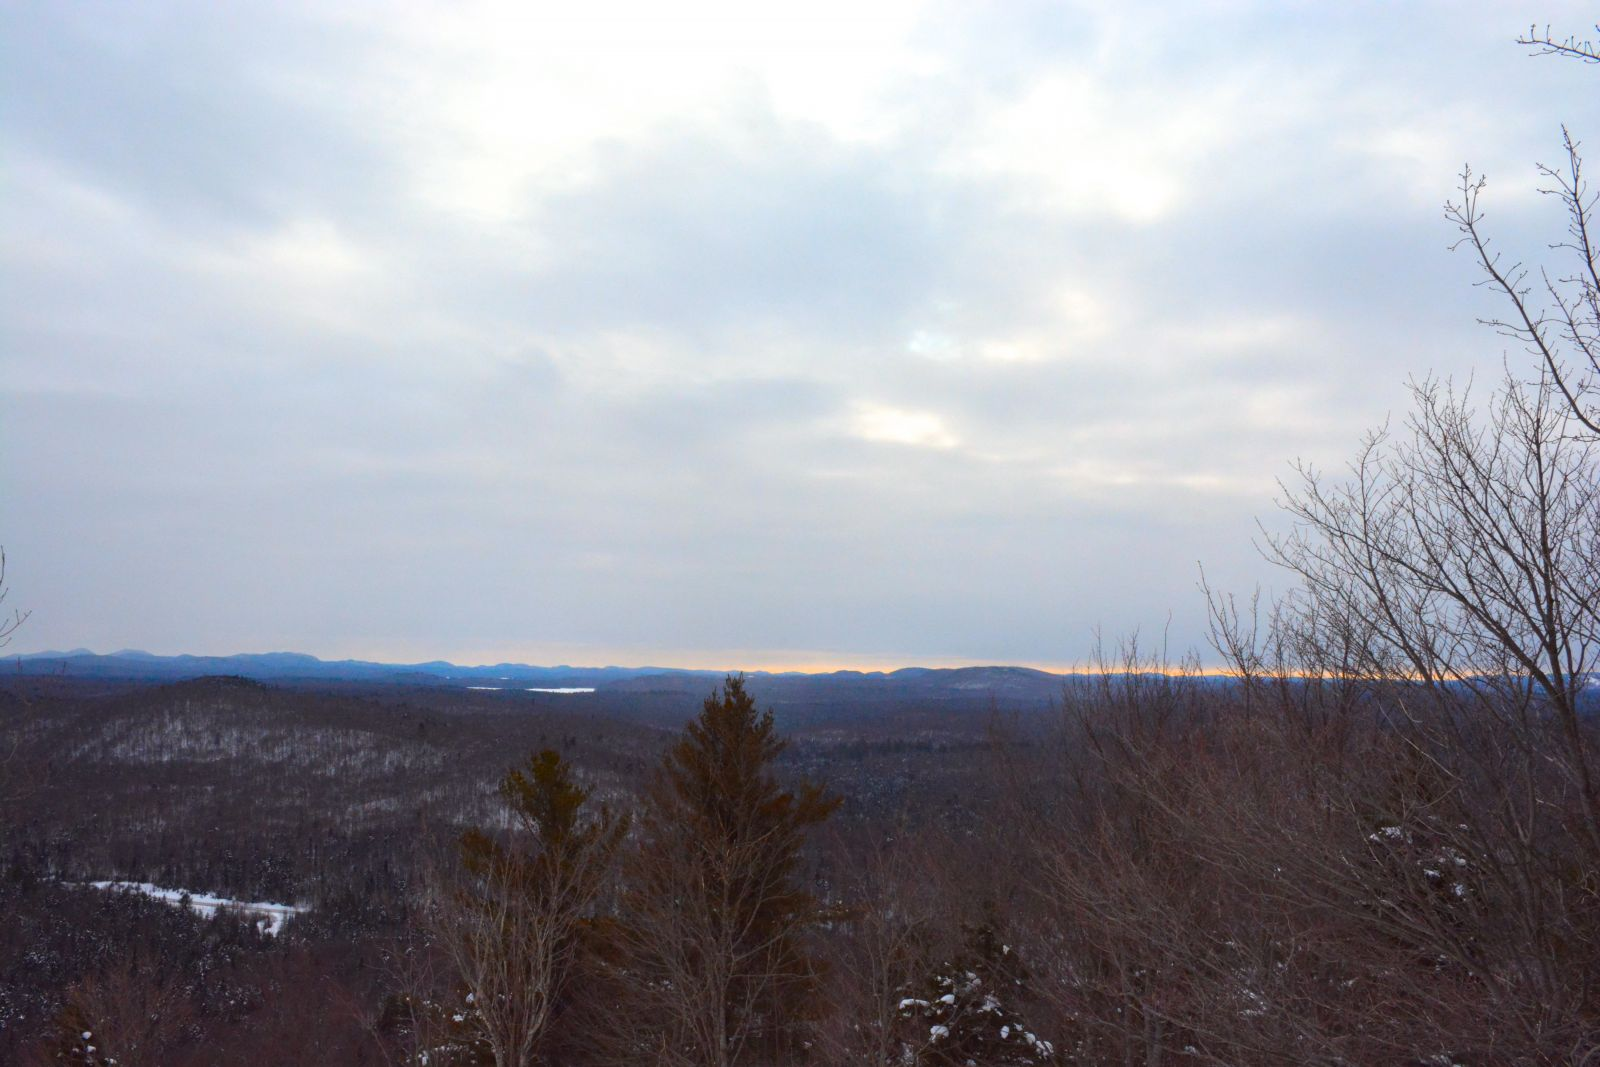 Late afternoon view from the top of Goodman Mountain